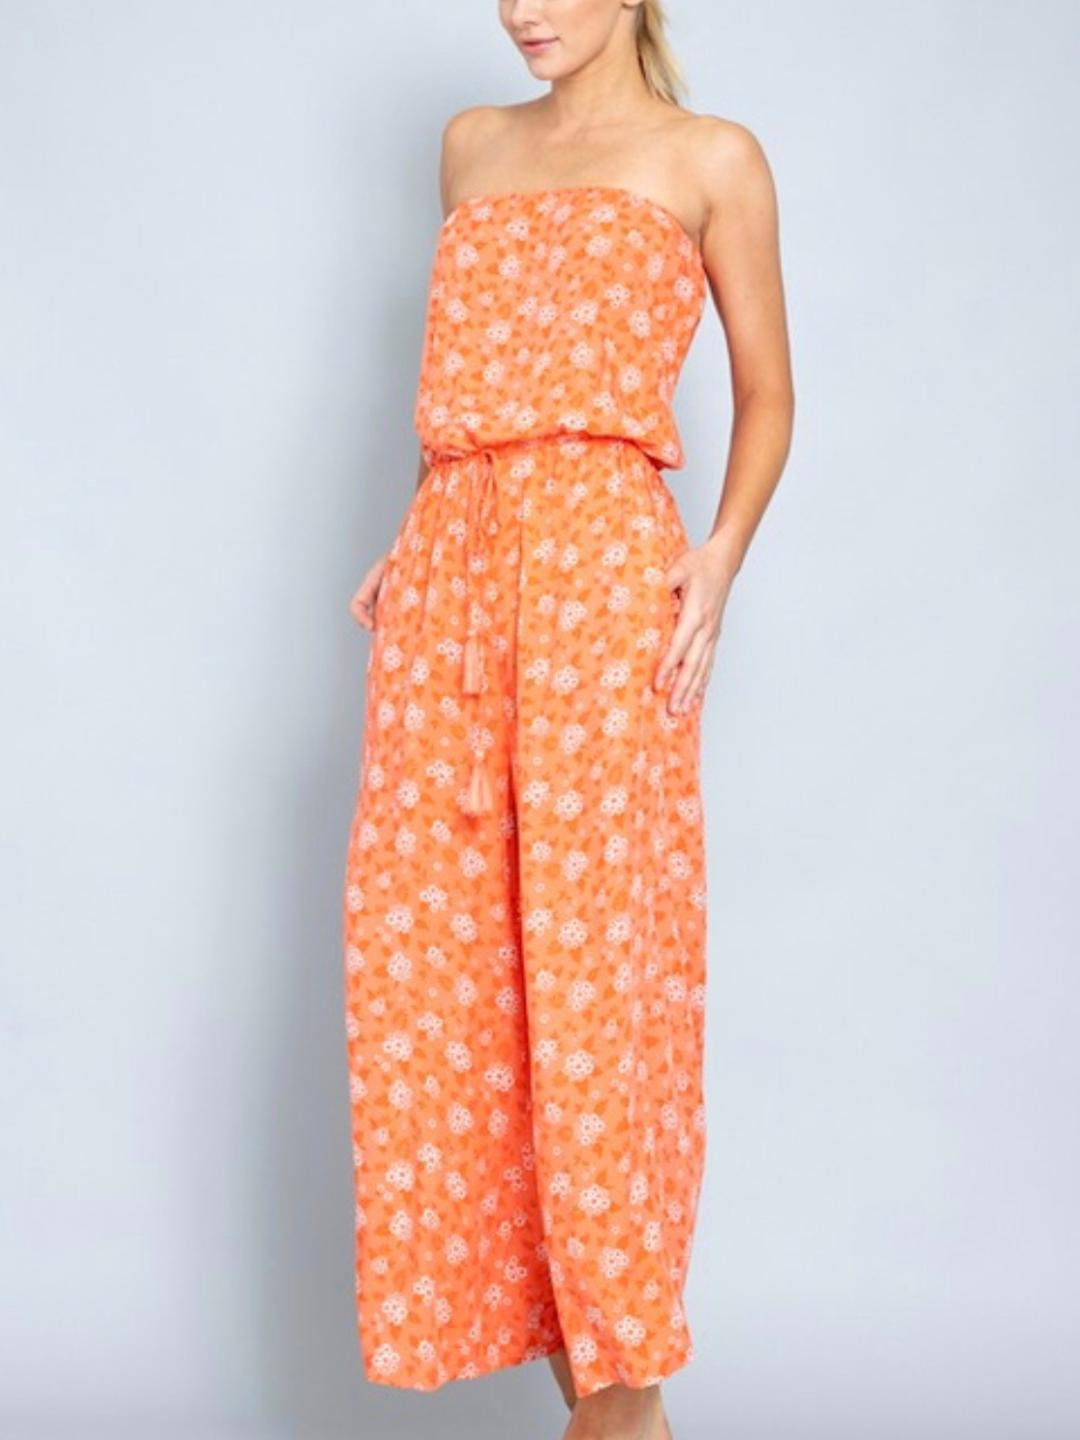 Hilton Head Resort Jumpsuit-Women's -New Arrivals-Runway Seven